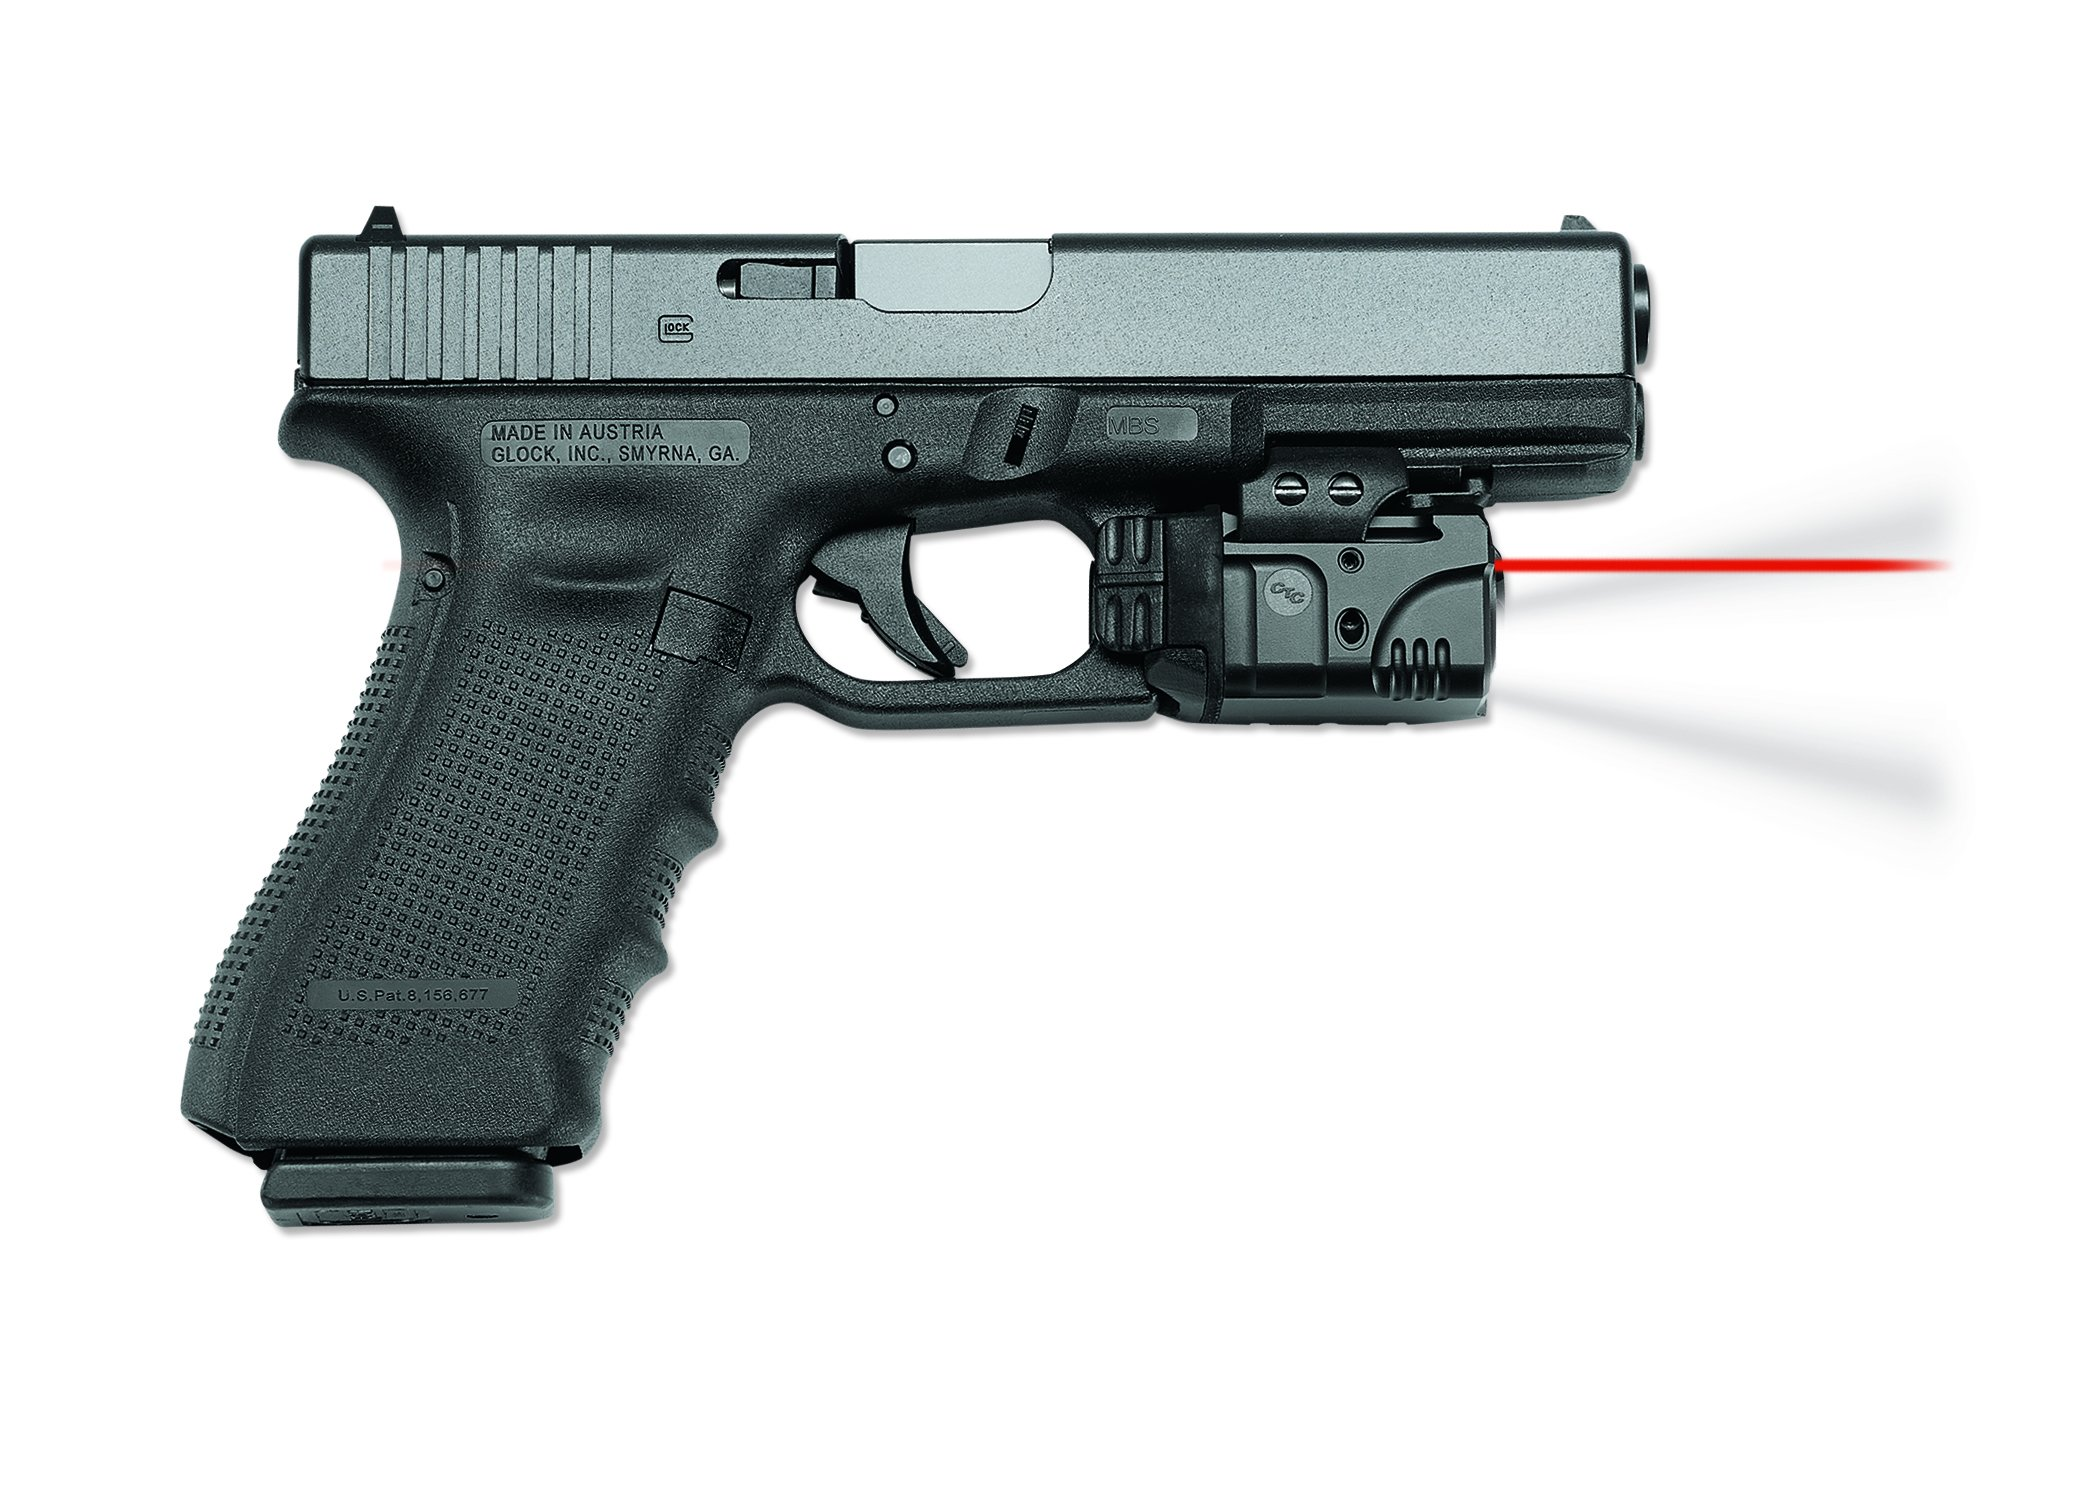 Crimson Trace CMR-205 Rail Master Pro Universal Red Laser Sight + Tactical Light by Crimson Trace (Image #3)